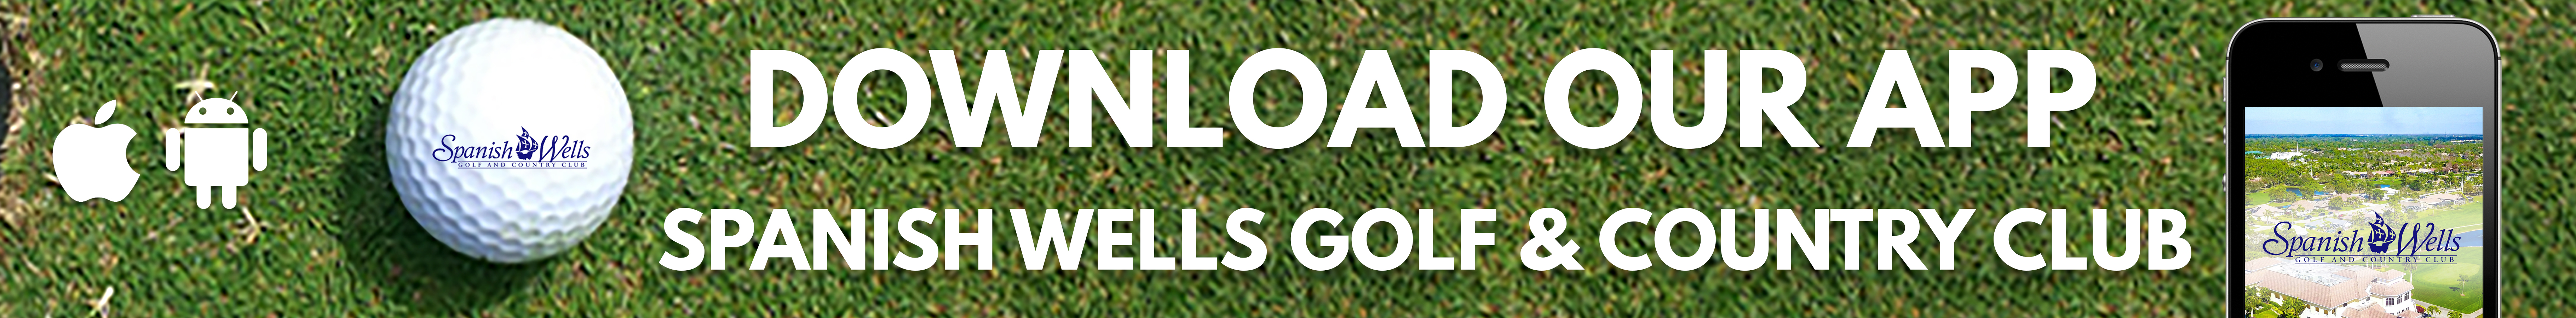 Spanish Wells Golf App